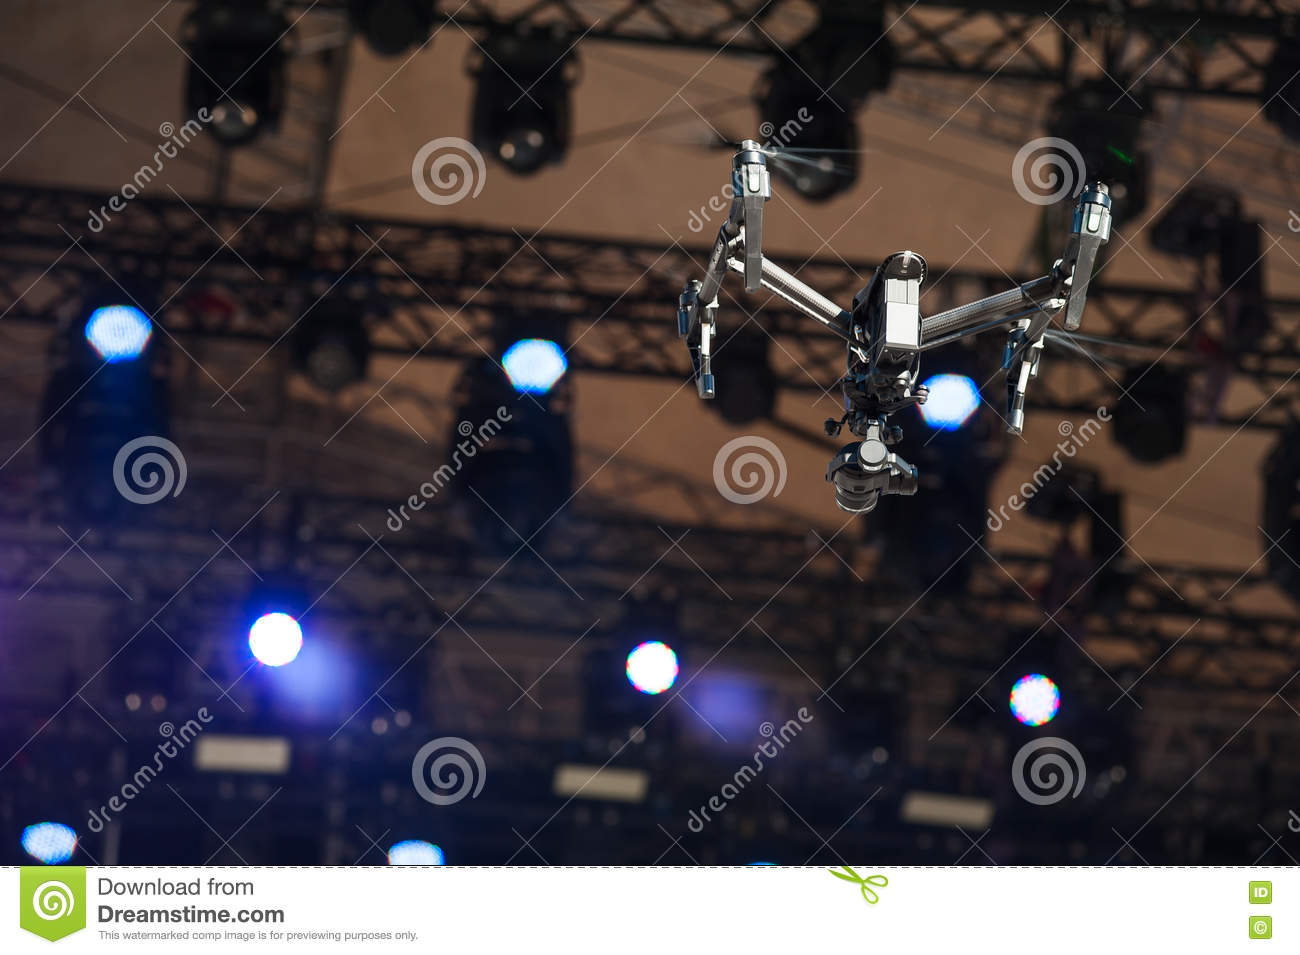 Drone flies over stage